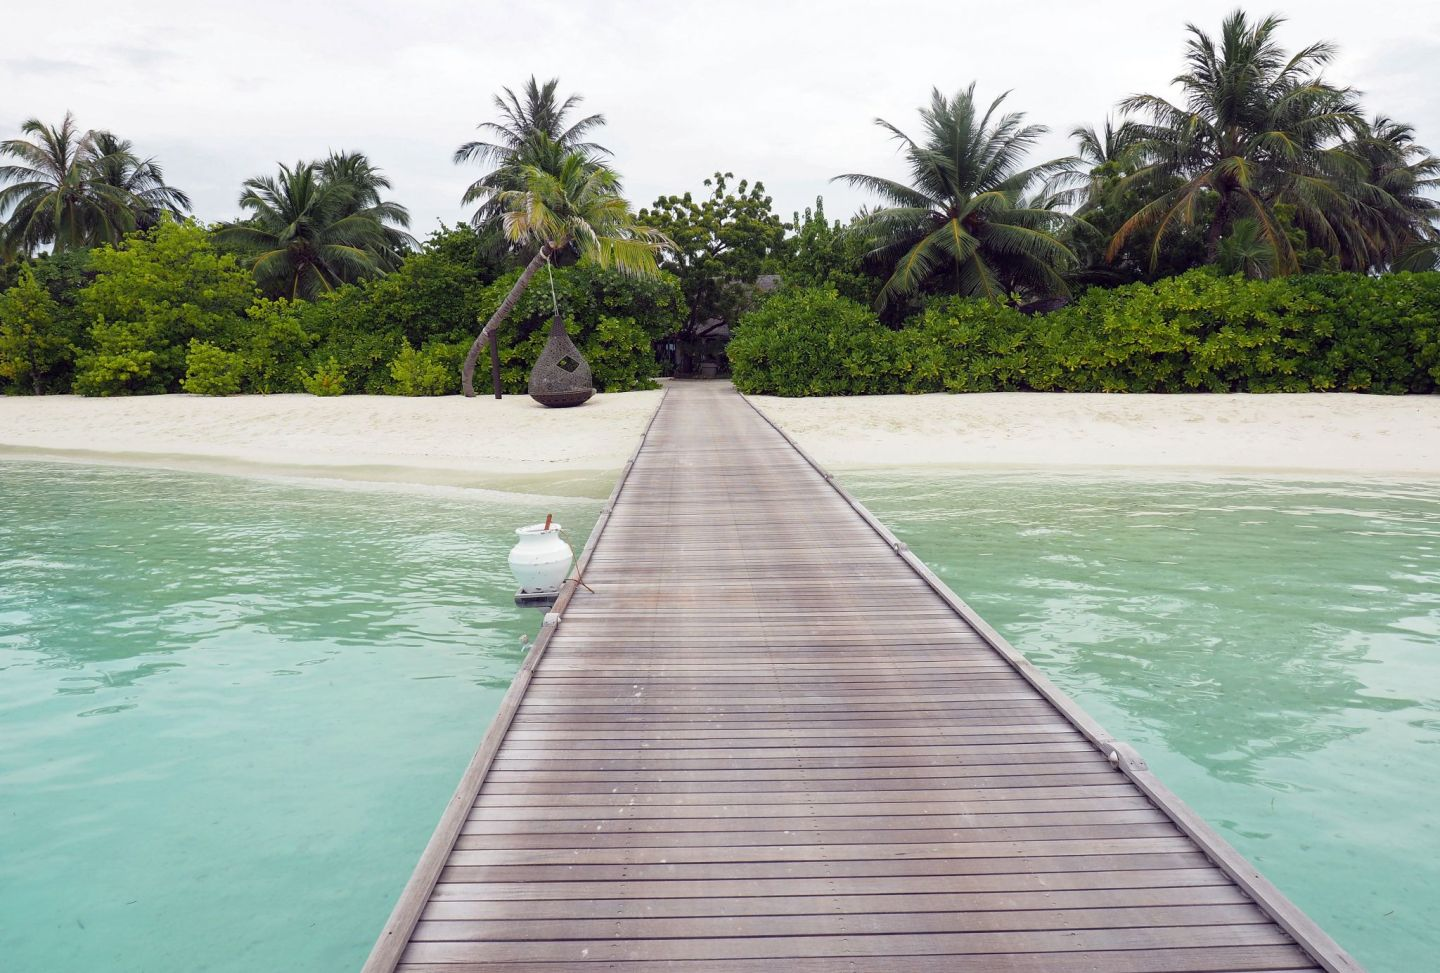 Walkway to Island in Maldives